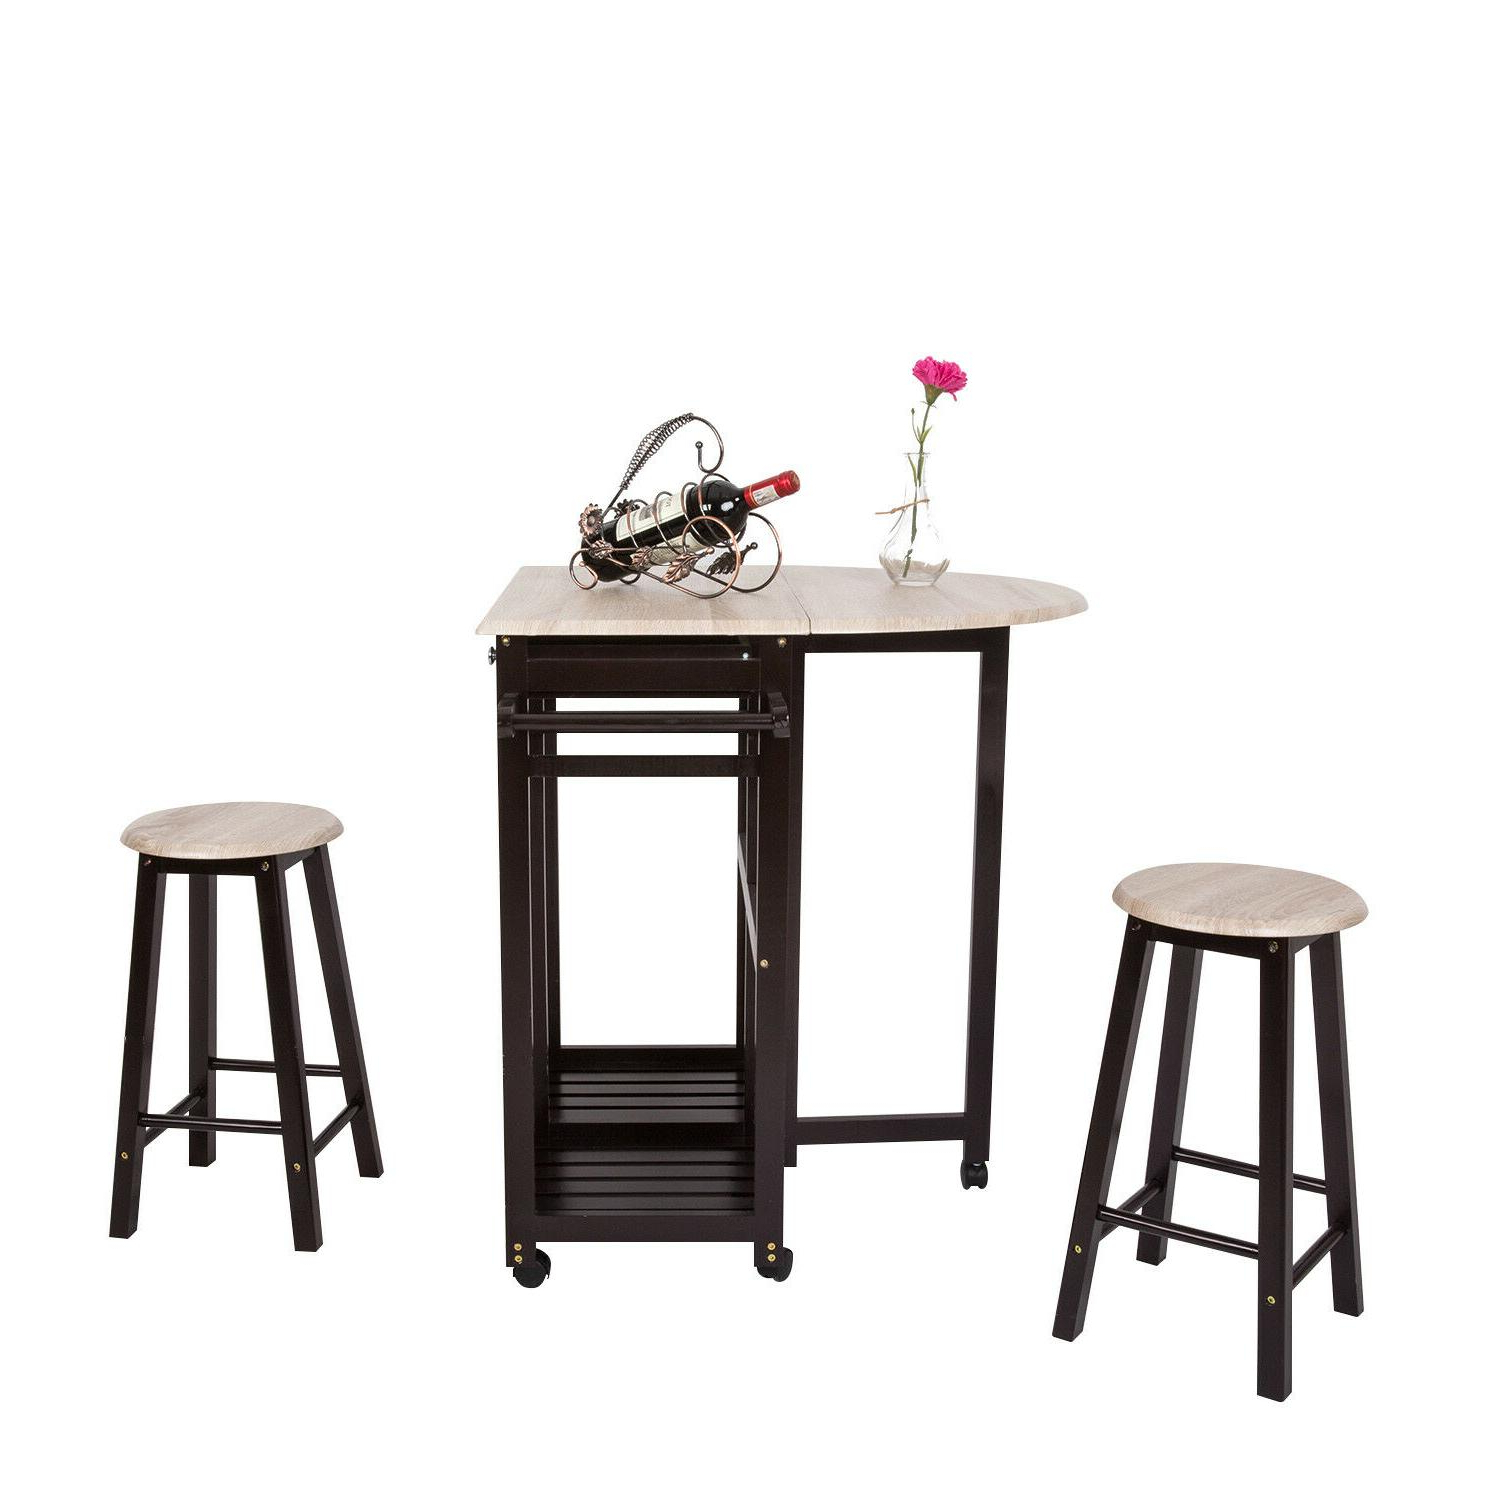 Ligon 3 Piece Breakfast Nook Dining Sets With Regard To Well Known Wooden Rolling Kitchen Trolley Cart 3 Pi (View 10 of 20)